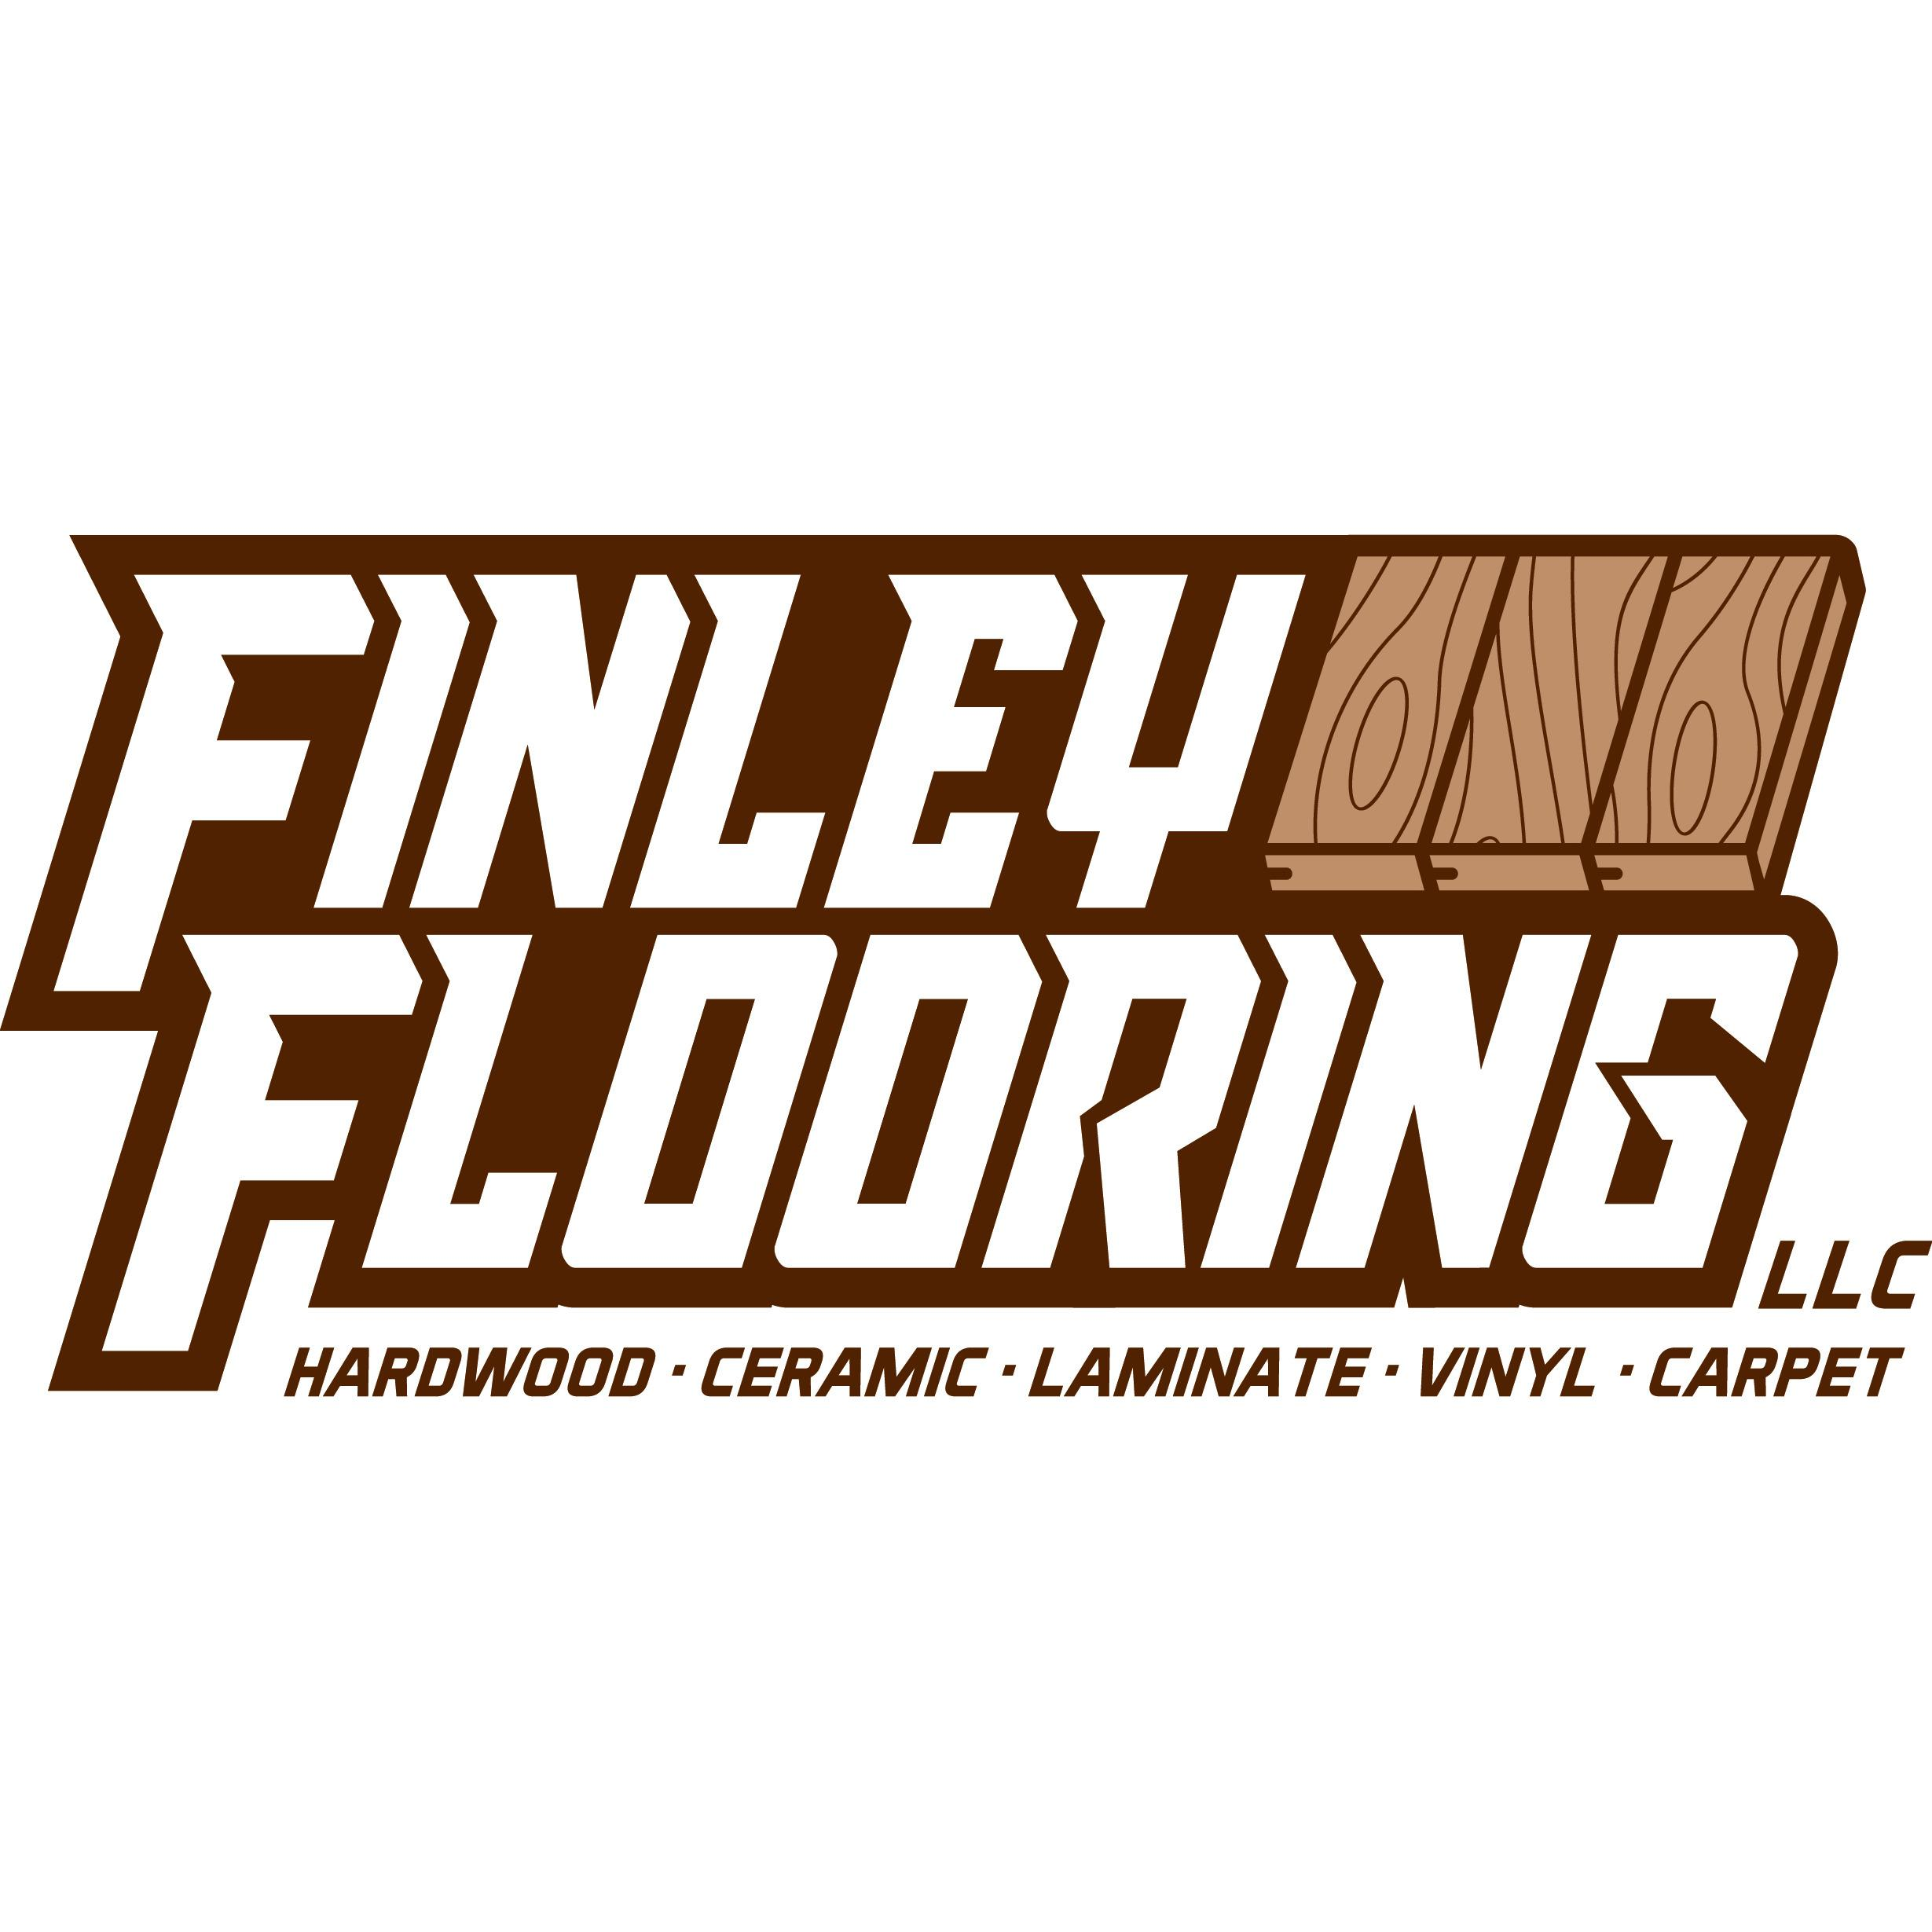 Finley Flooring LLC